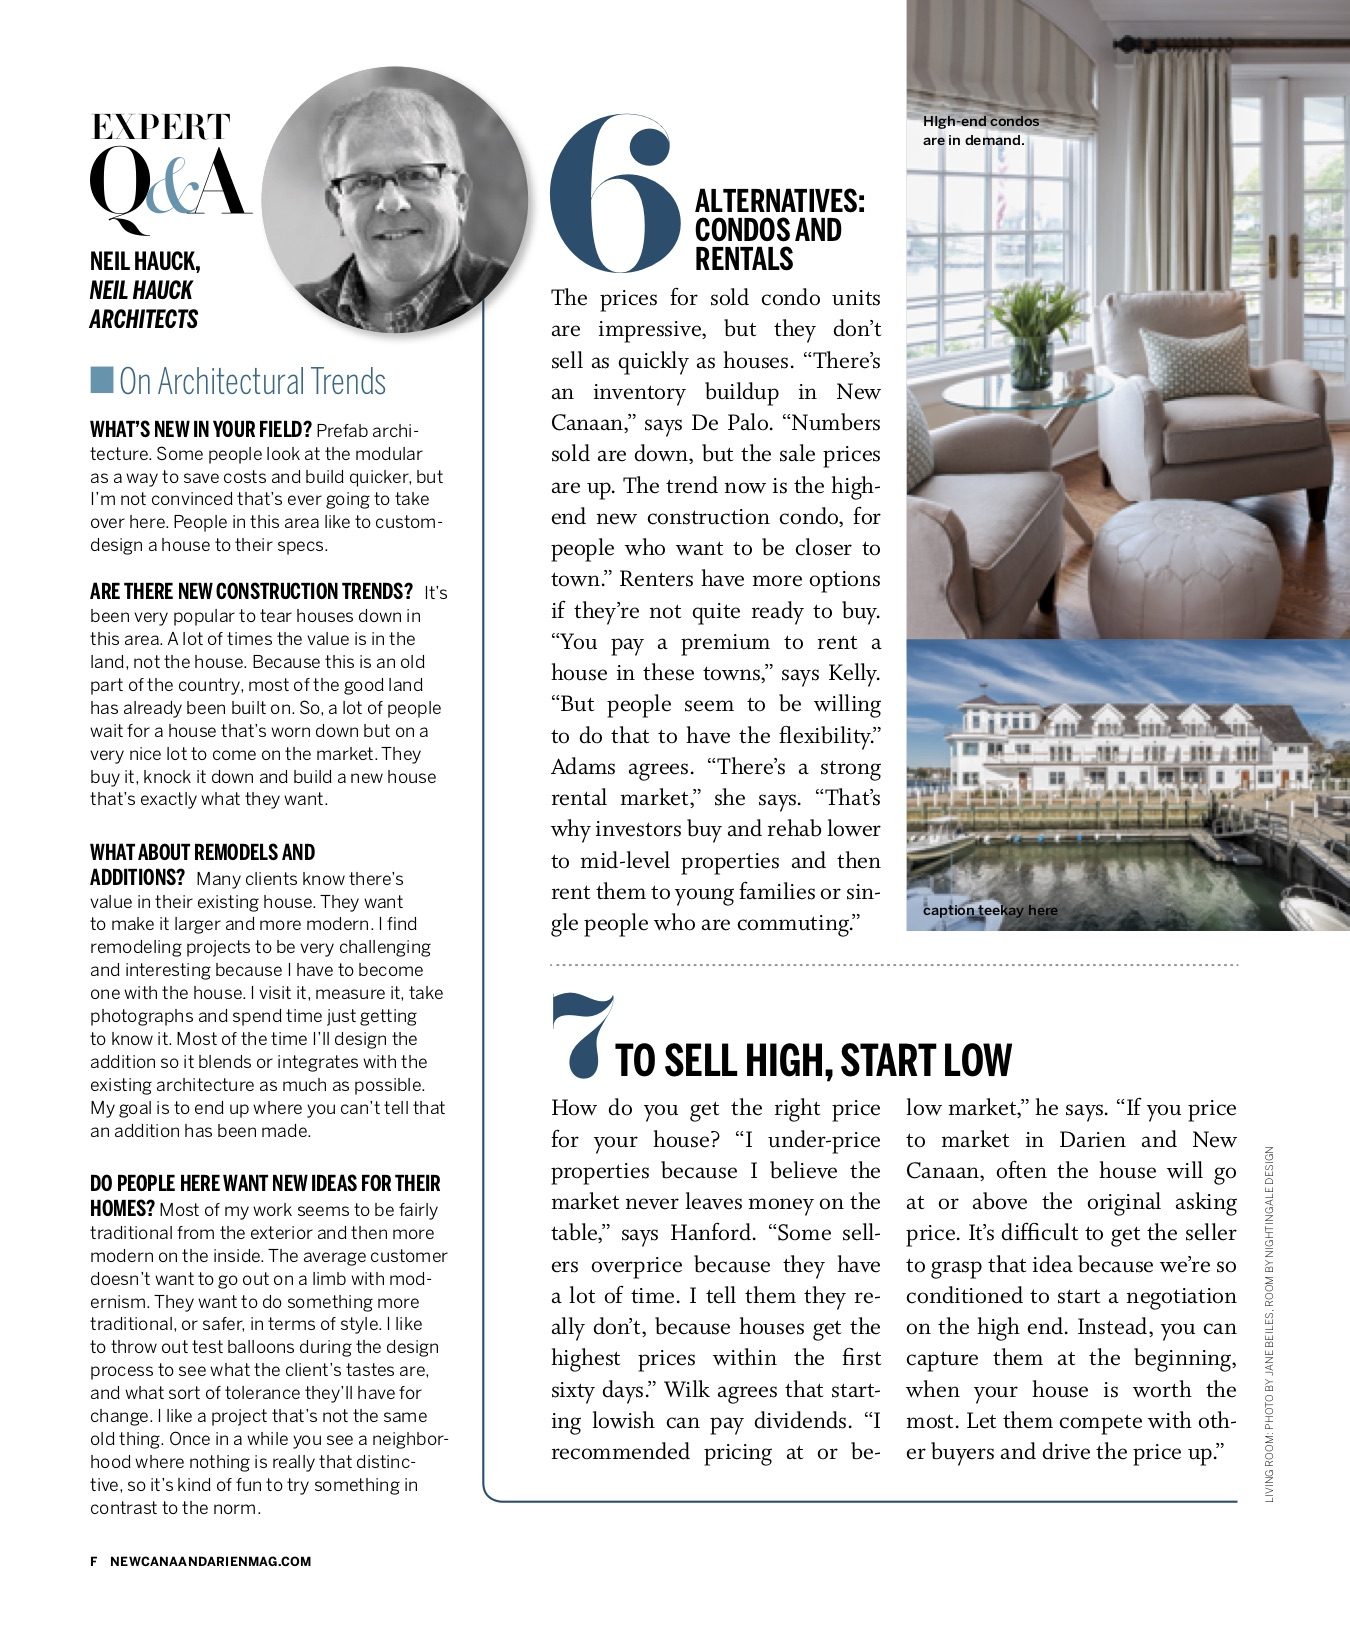 New Canaan magazine real estate story 5.jpg